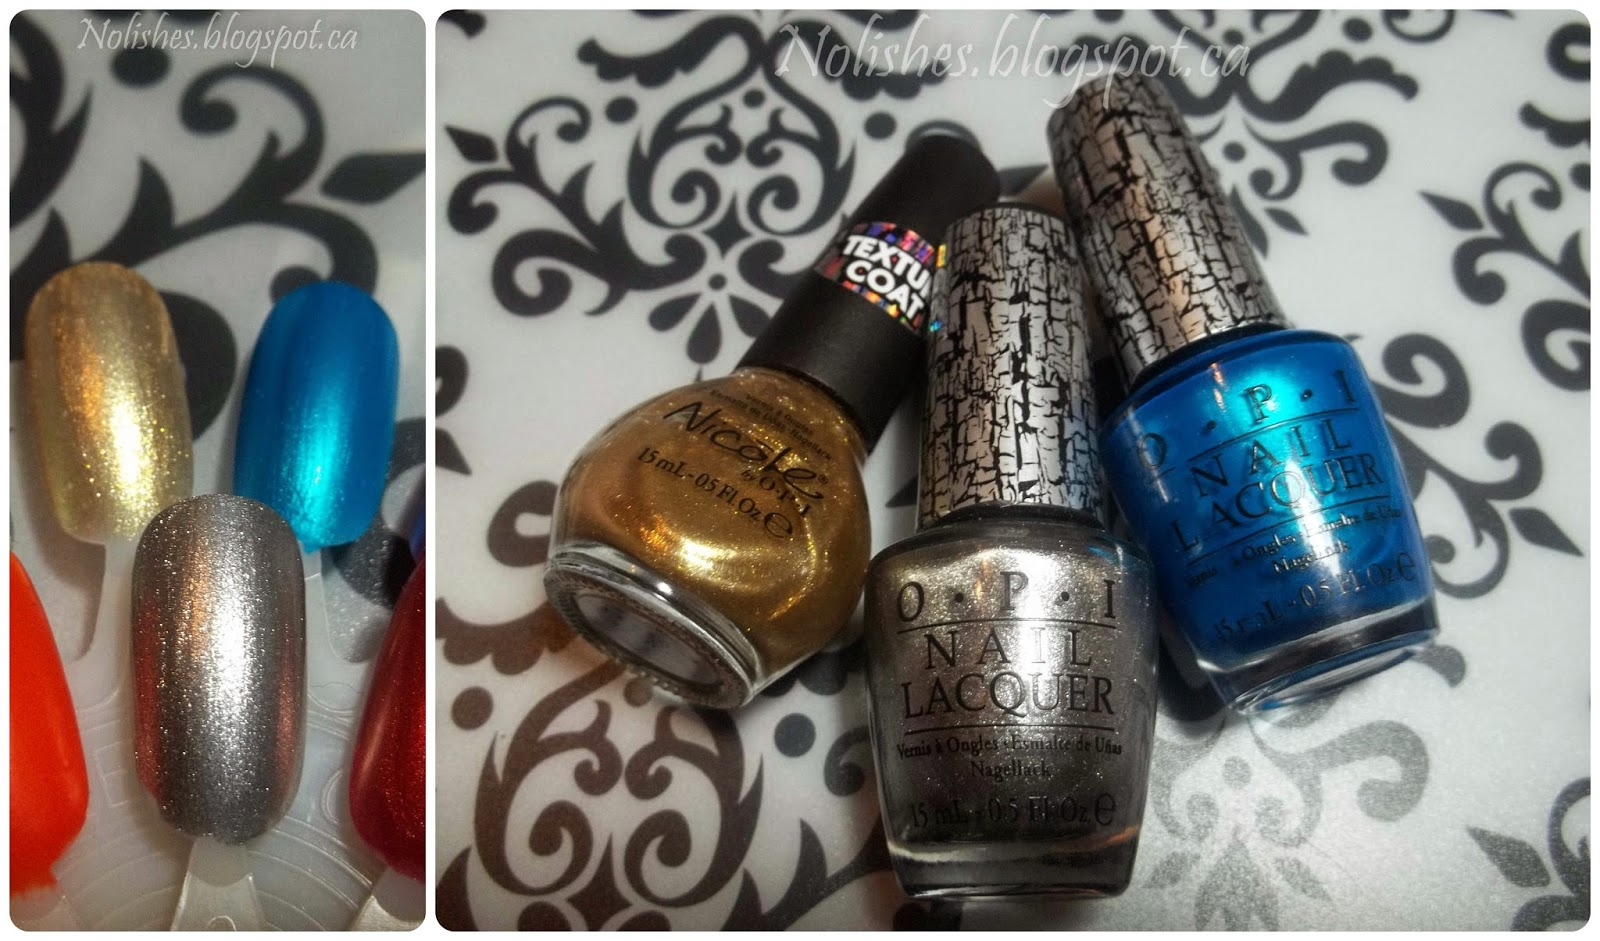 Swatches: OPI's 'Silver Shatter' and 'Turquoise Shatter', and Nicole by OPI's 'Gold Texture' used as regular polish